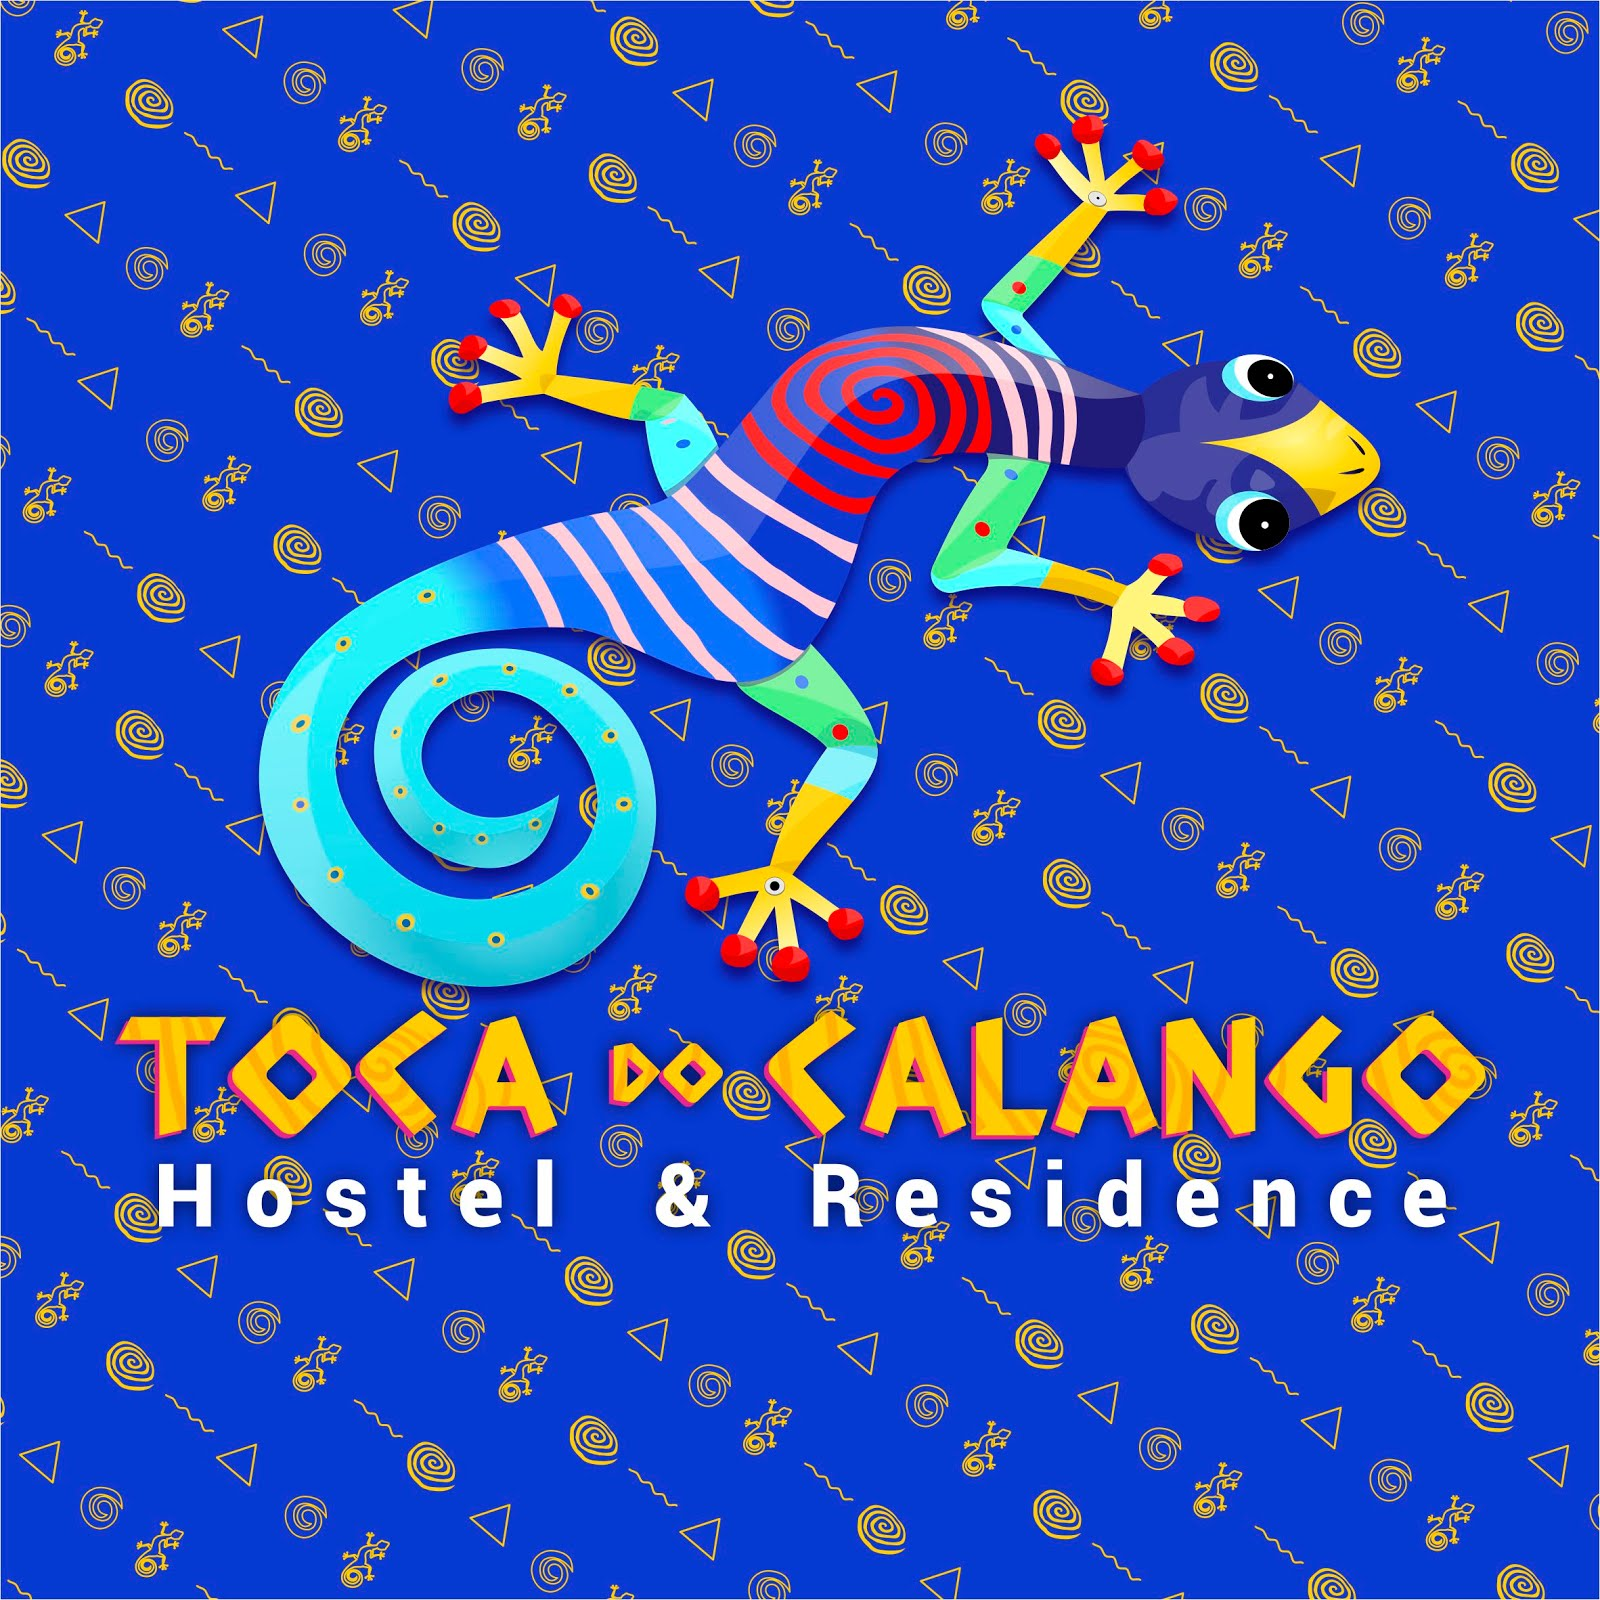 TOCA DO CALANGO HOSTEL & RESIDENCE